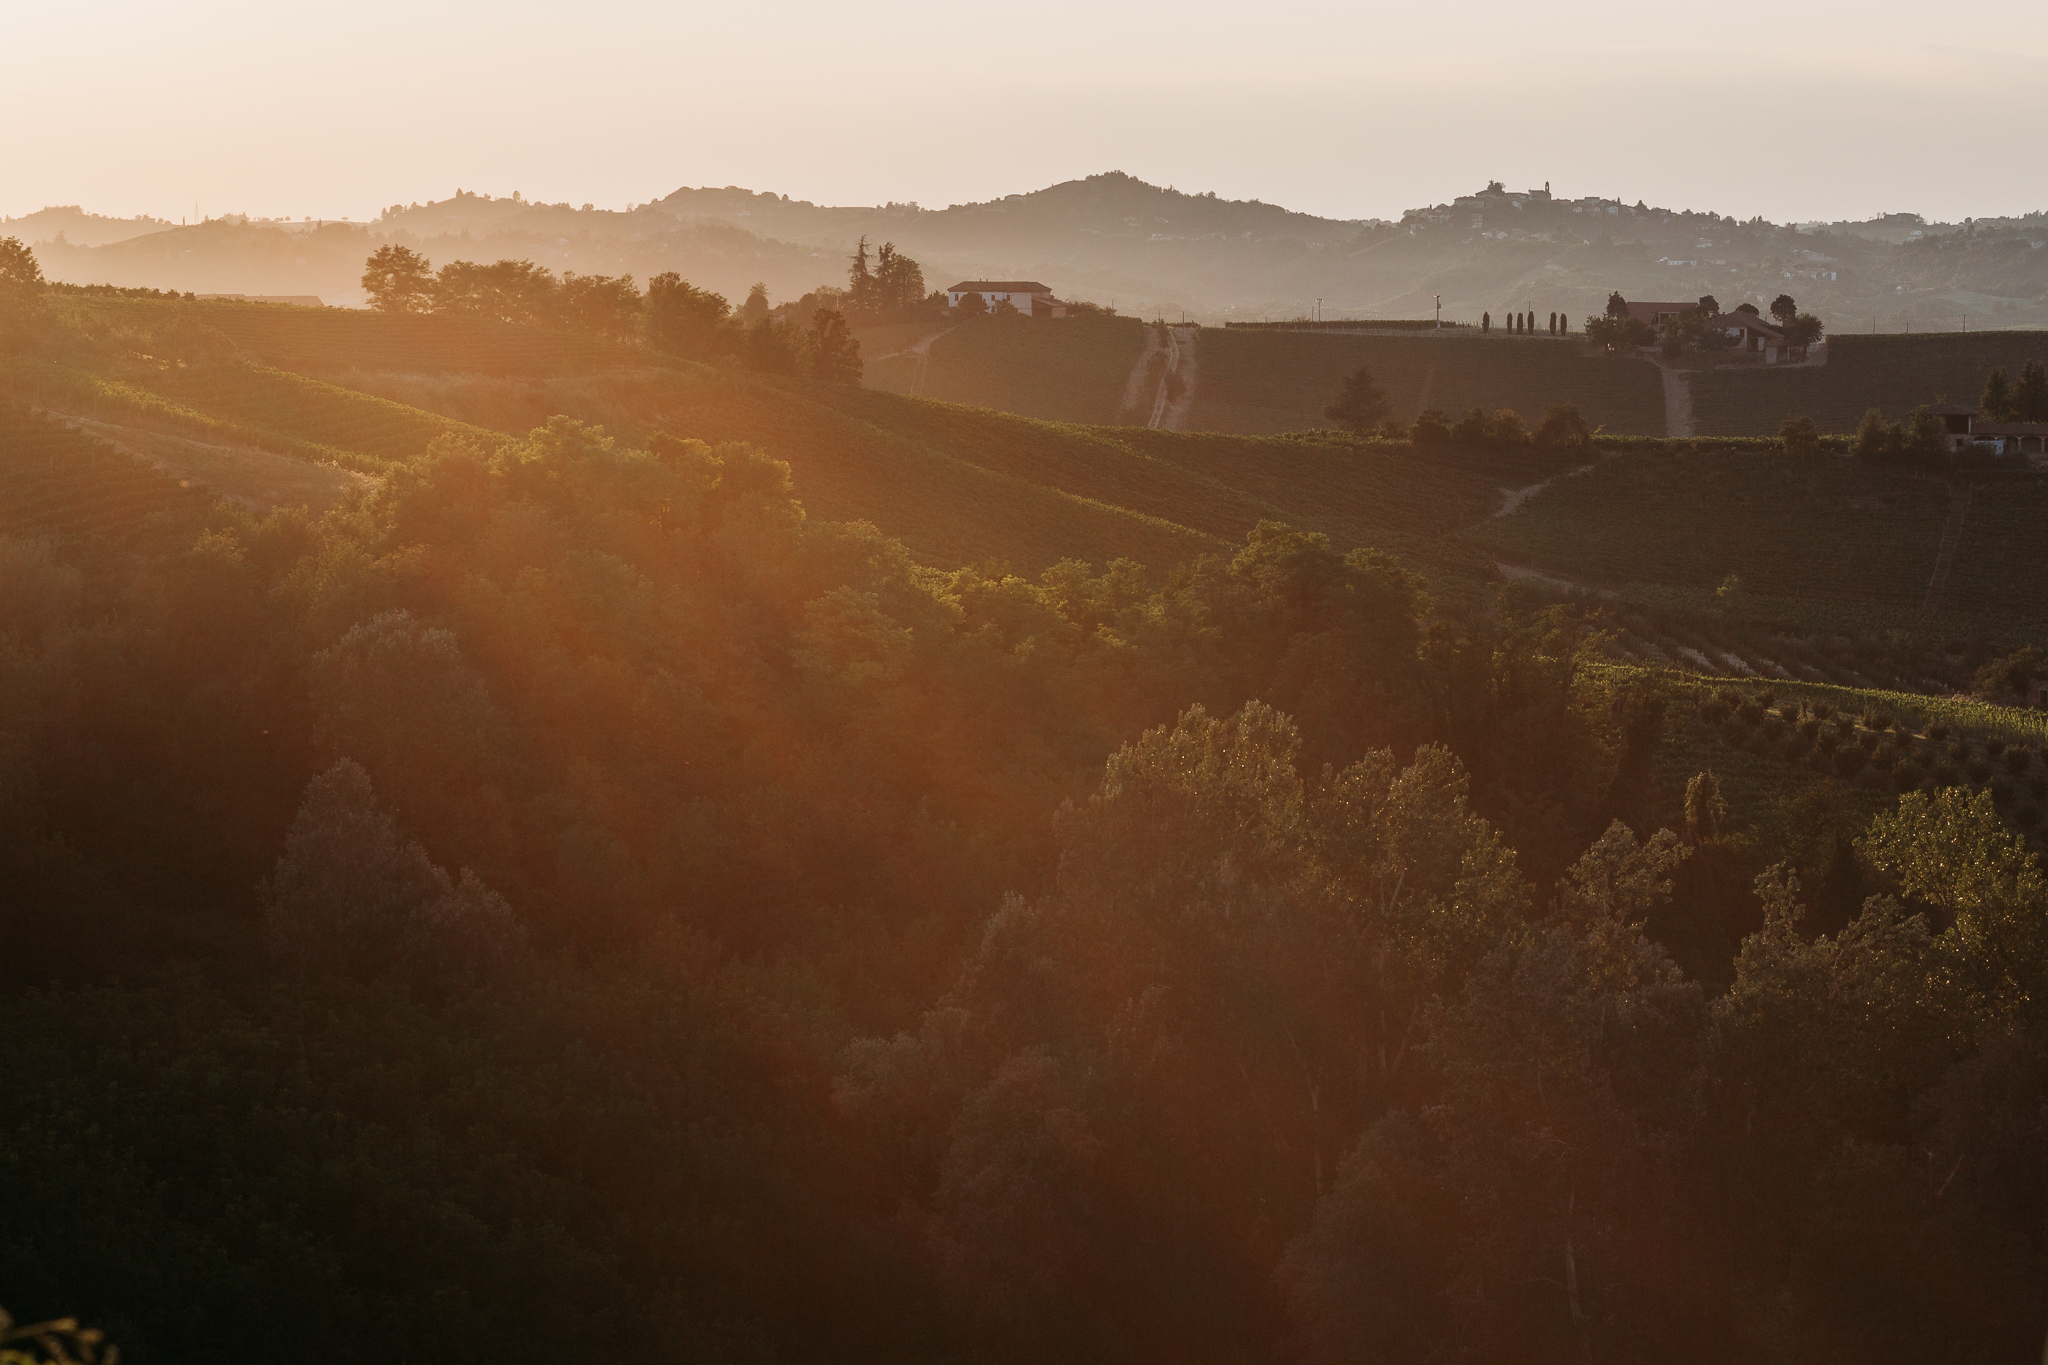 Landscape from Cascina Faletta terrace, Italy